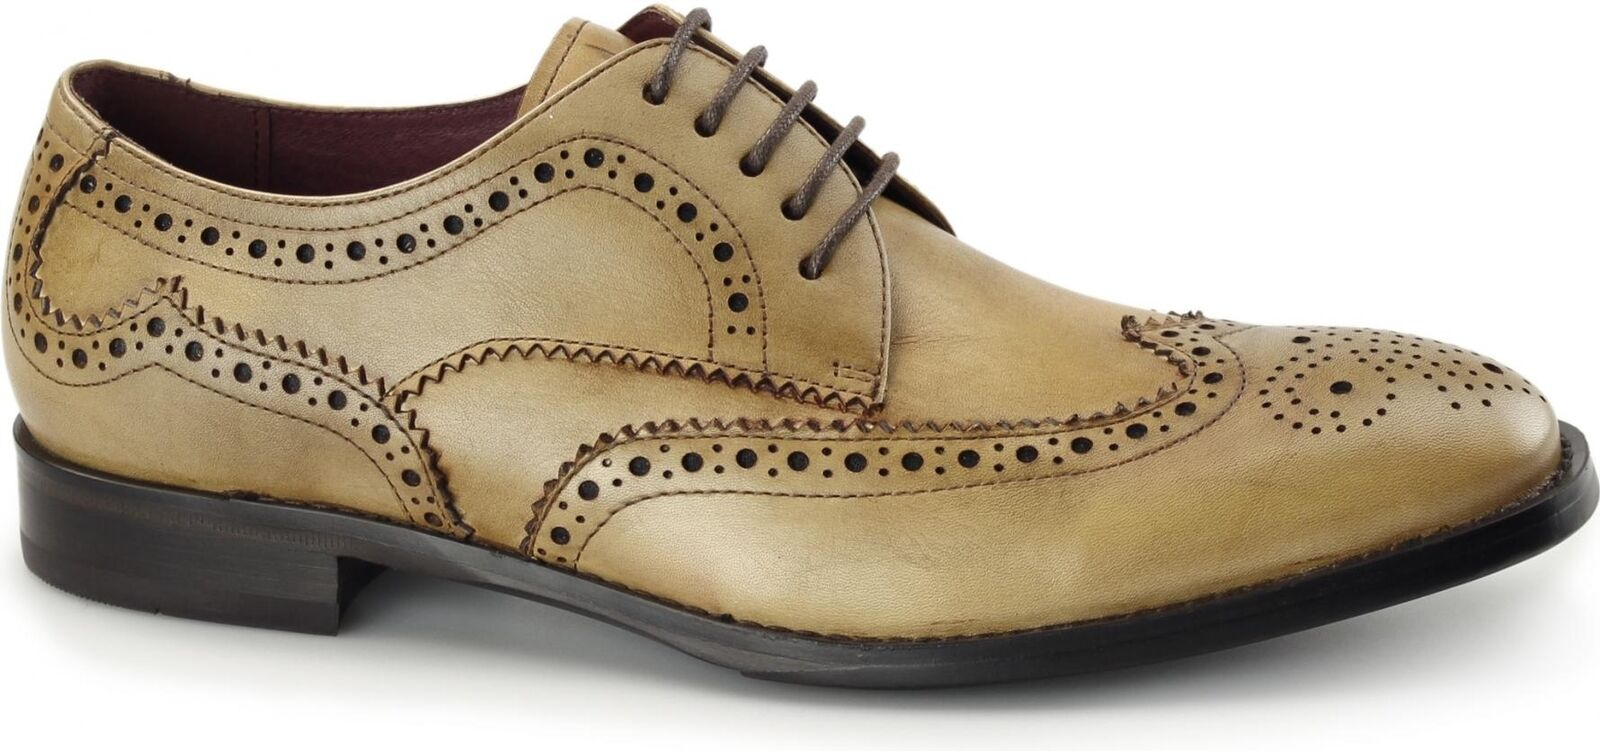 Azor LUGANO Mens Leather Smart Casual Cushioned Derby Brogue shoes Tan Brown